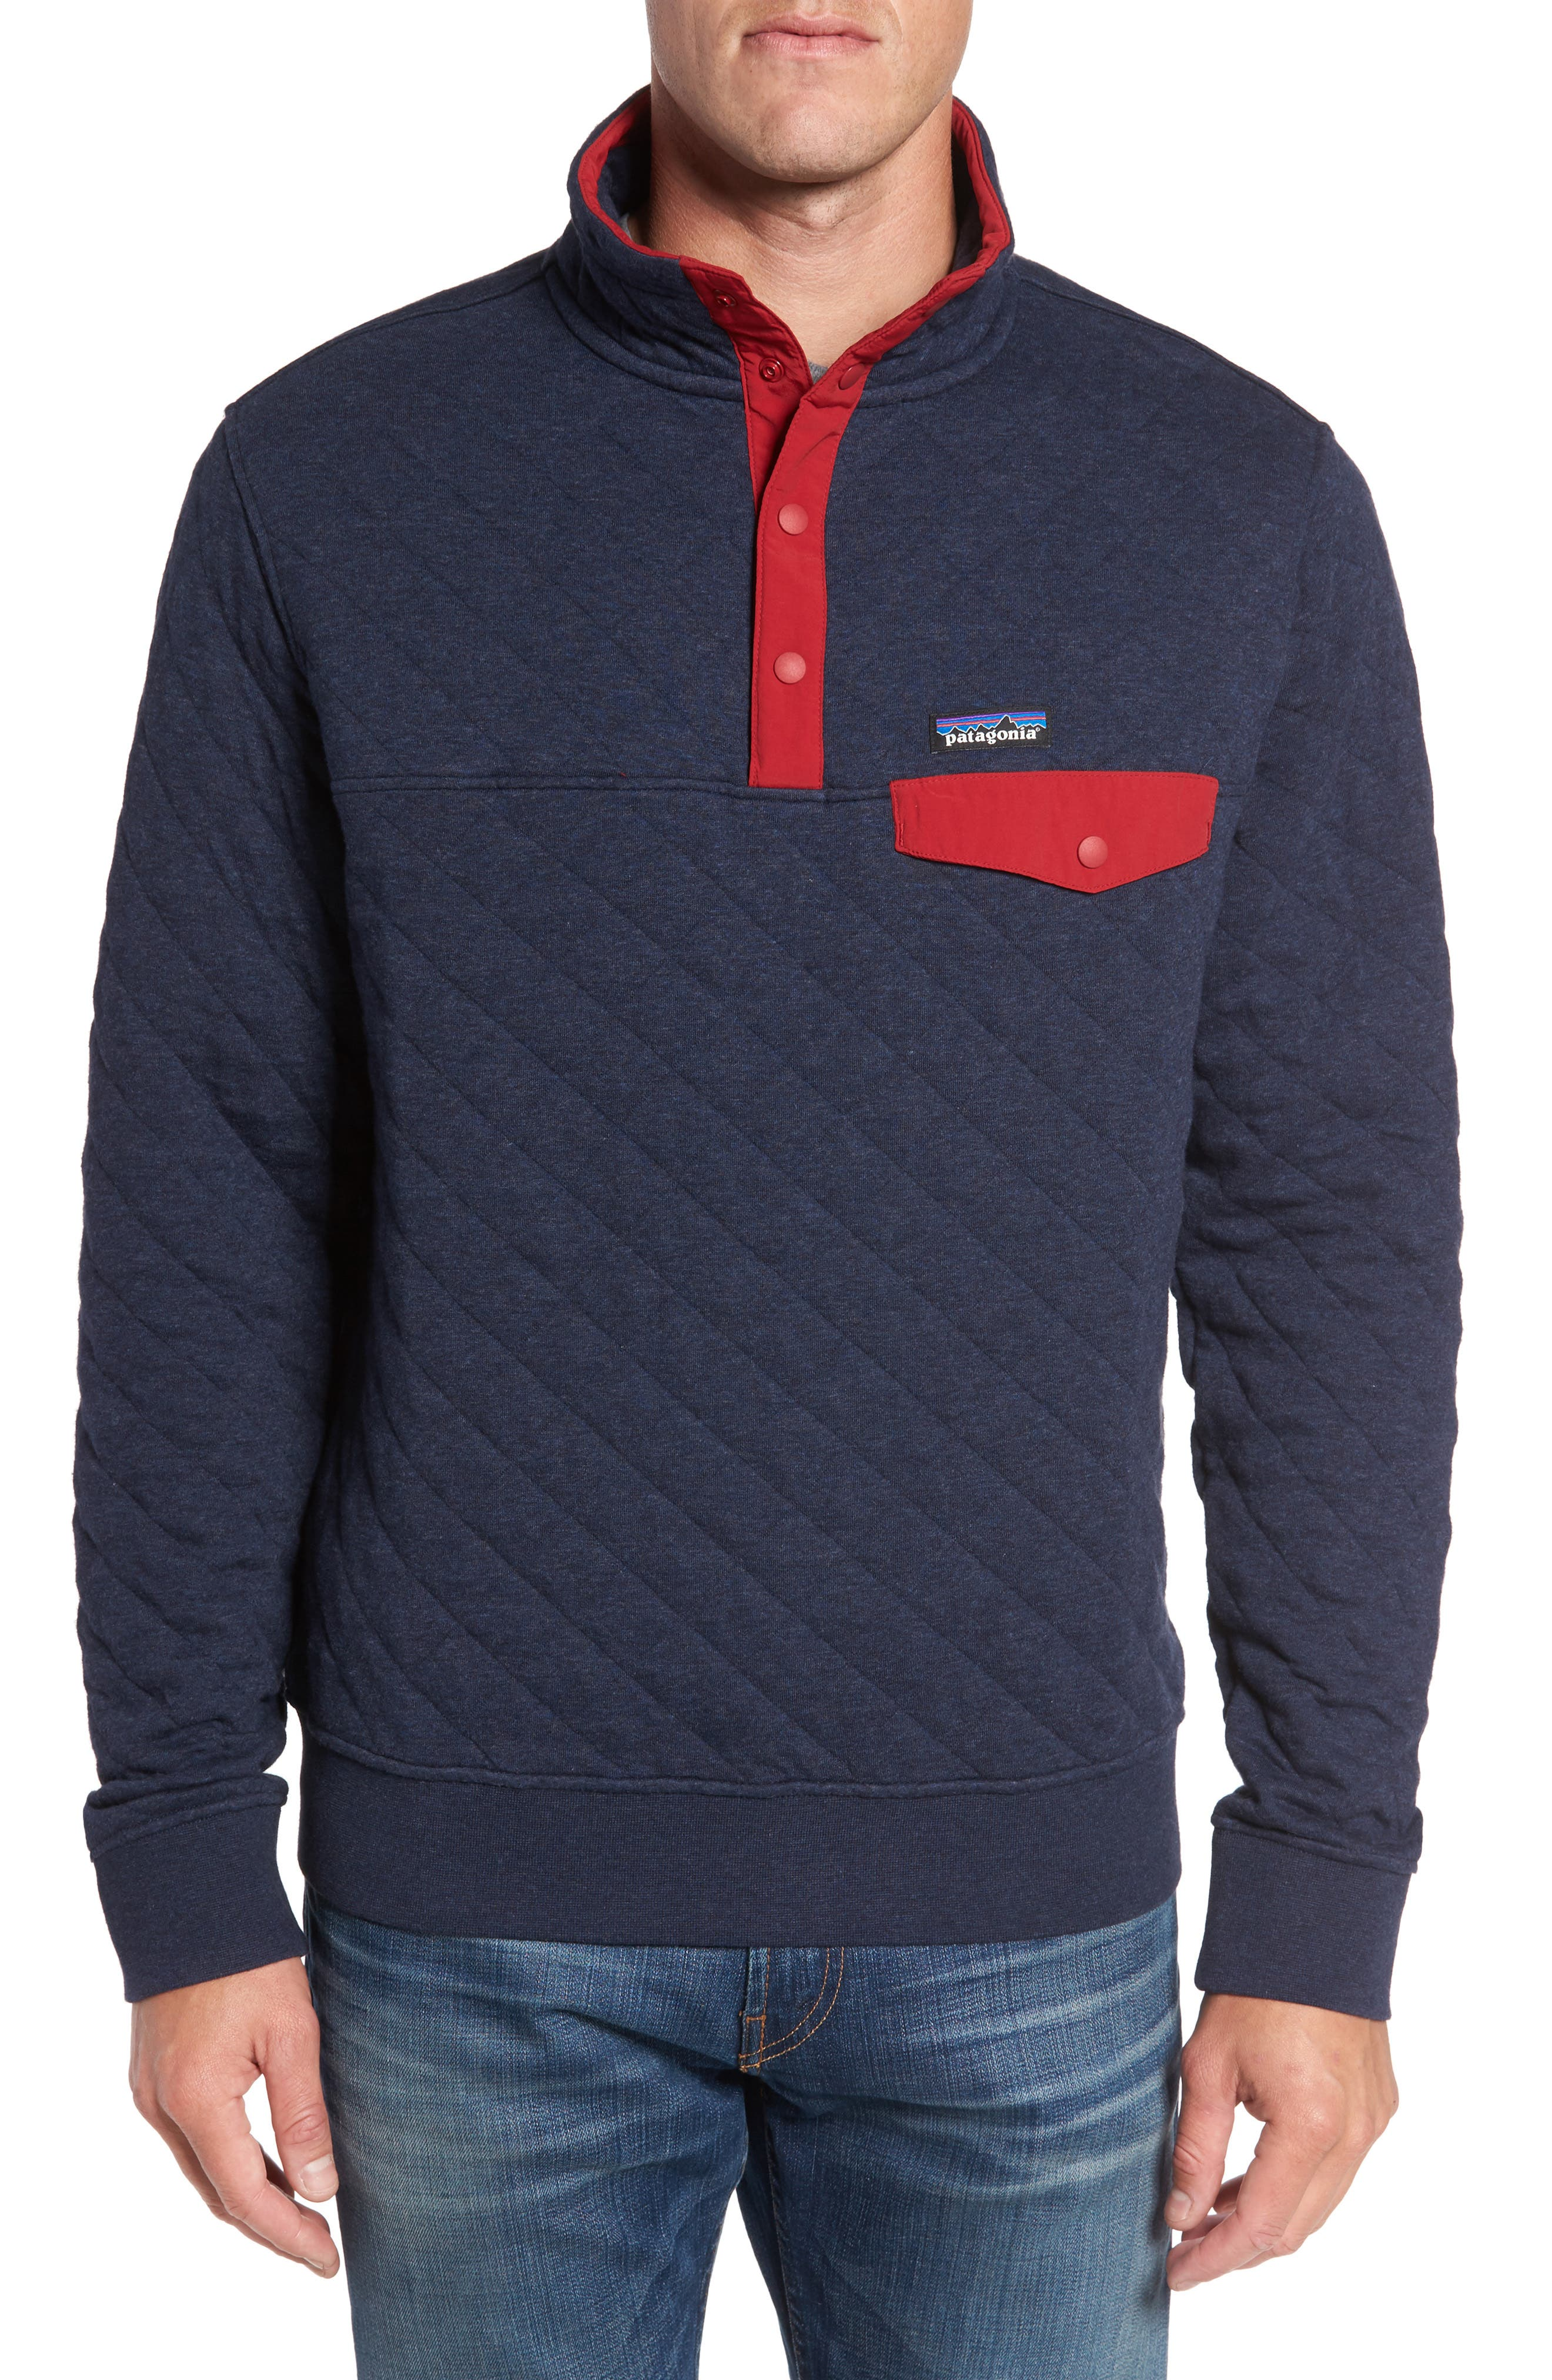 Main Image - Patagonia Snap-T Quilted Fleece Pullover